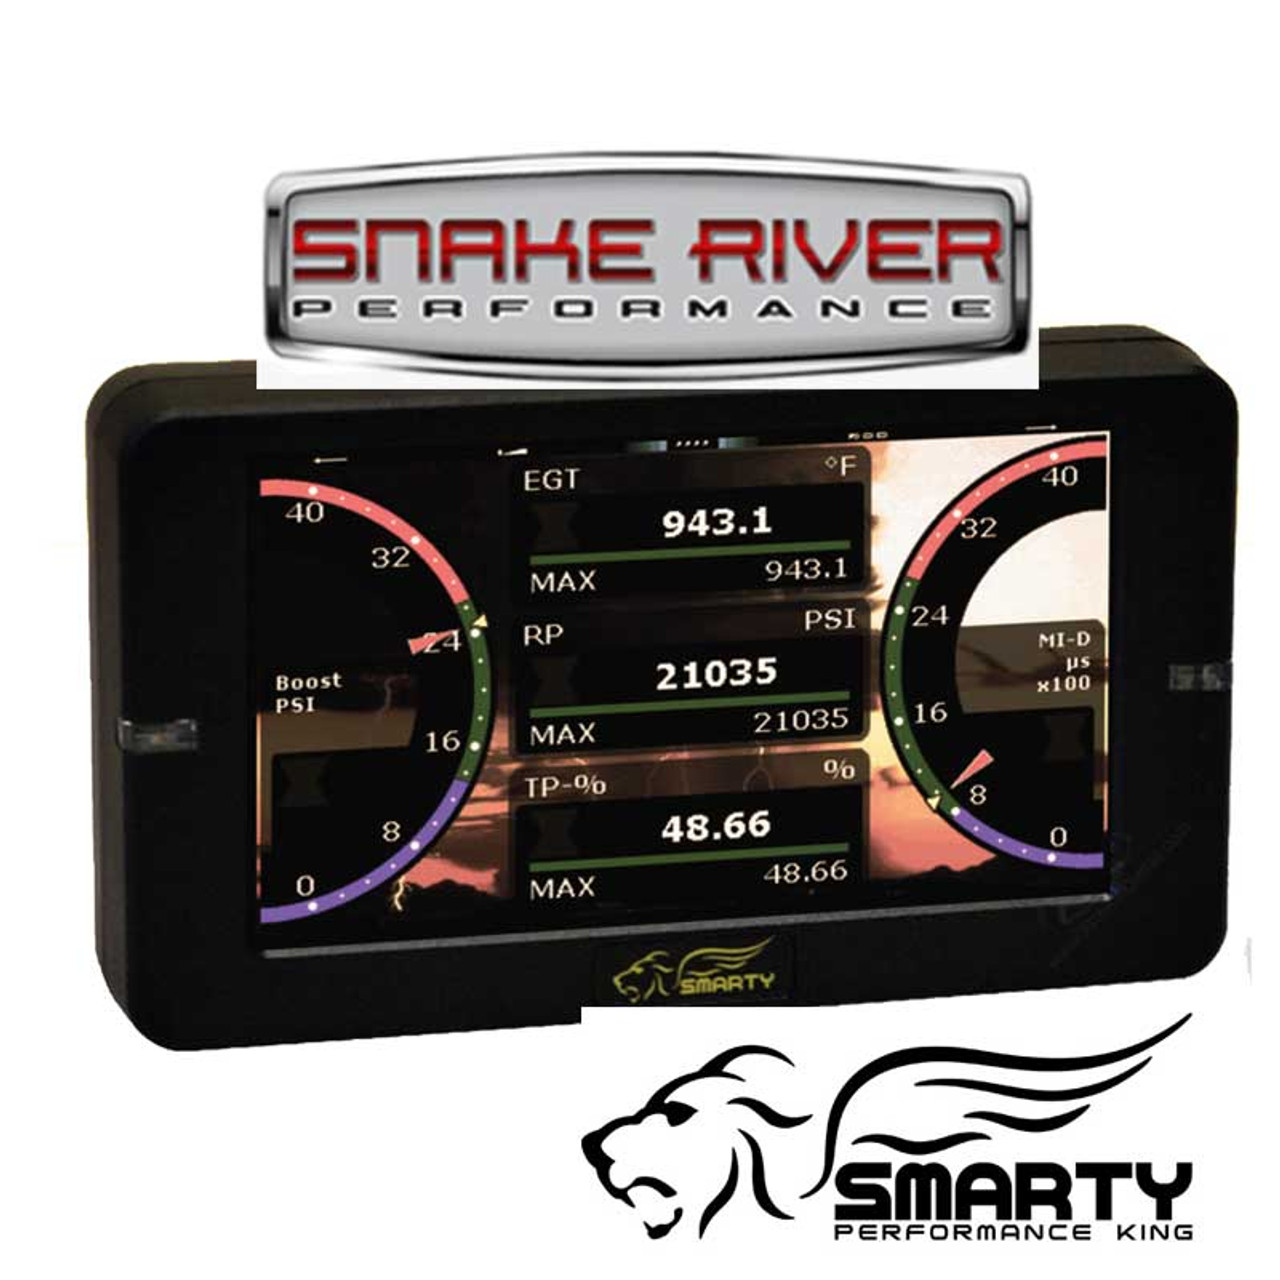 S2G - SMARTY TOUCH S2G PROGRAMMER MADS ELECTRONICS TUNER 98.5-12 DODGE CUMMINS DIESEL 5.9L & 6.7L